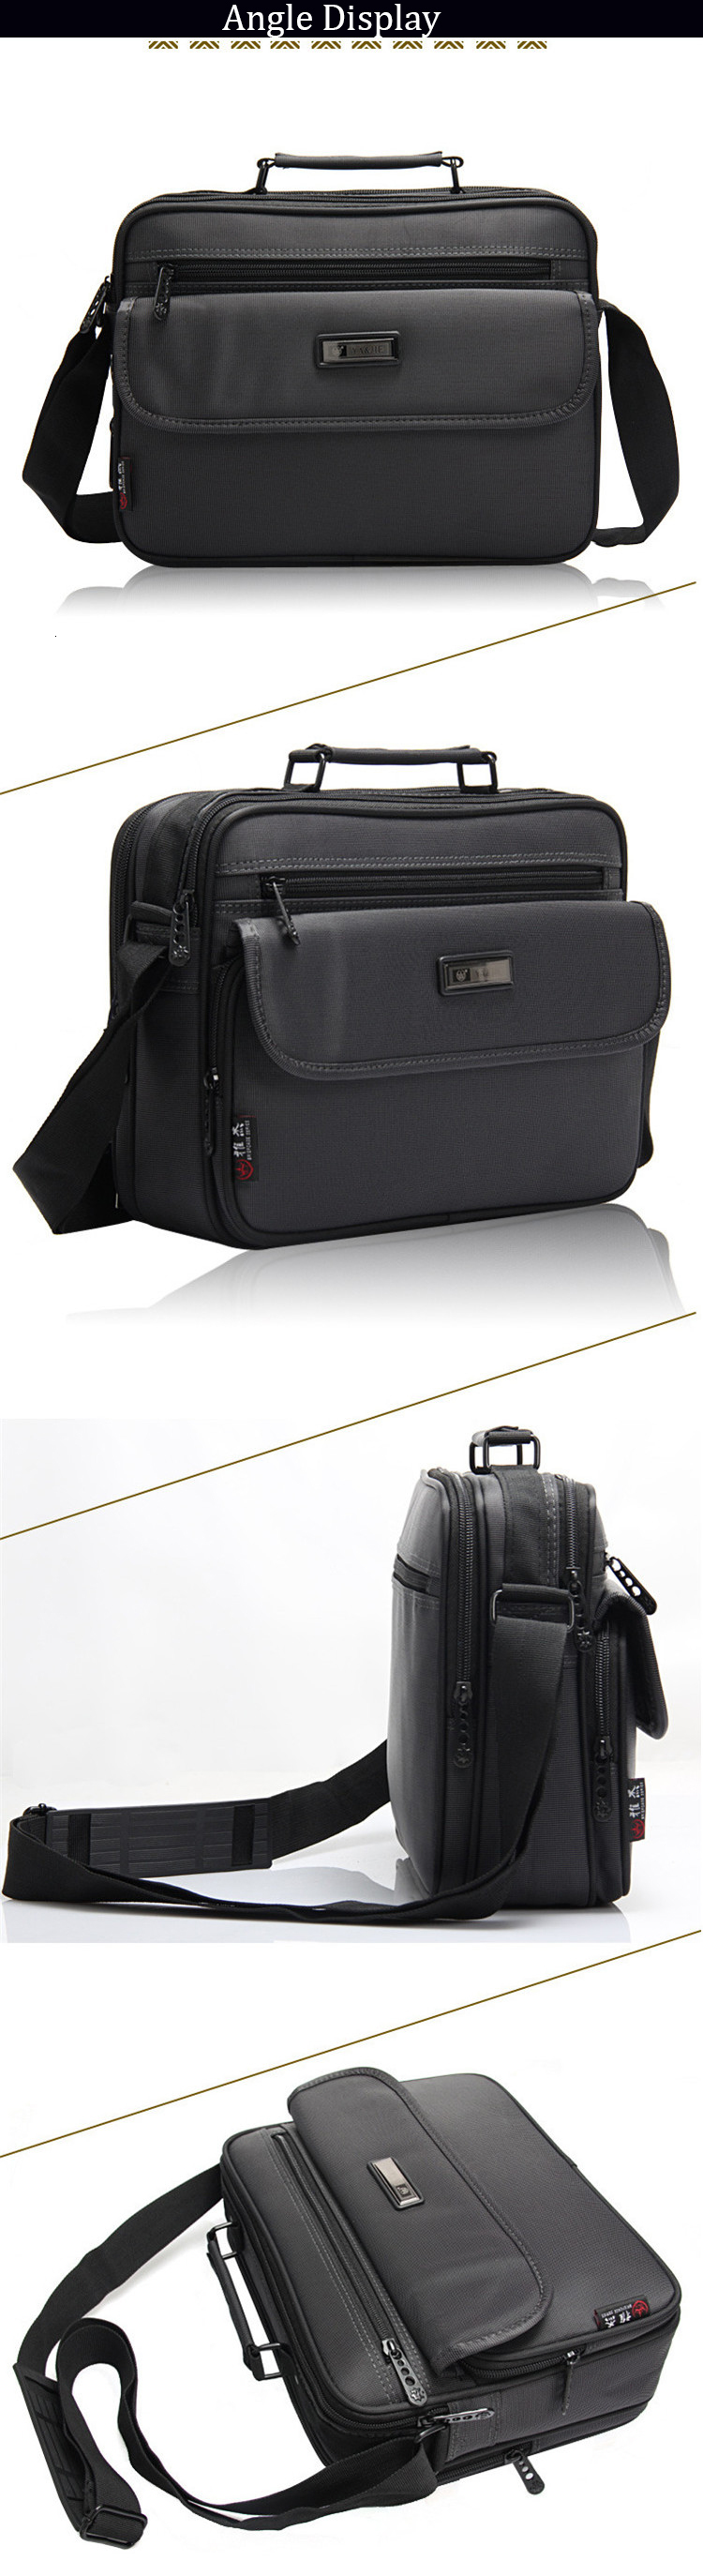 H0bd768cb0cdb4ac59a5fc10bfca661733 - New Briefcases Of Sizes Men's Laptop Bag Top Quality Waterproof Men bags Business Package Shoulder Bag masculina briefcase